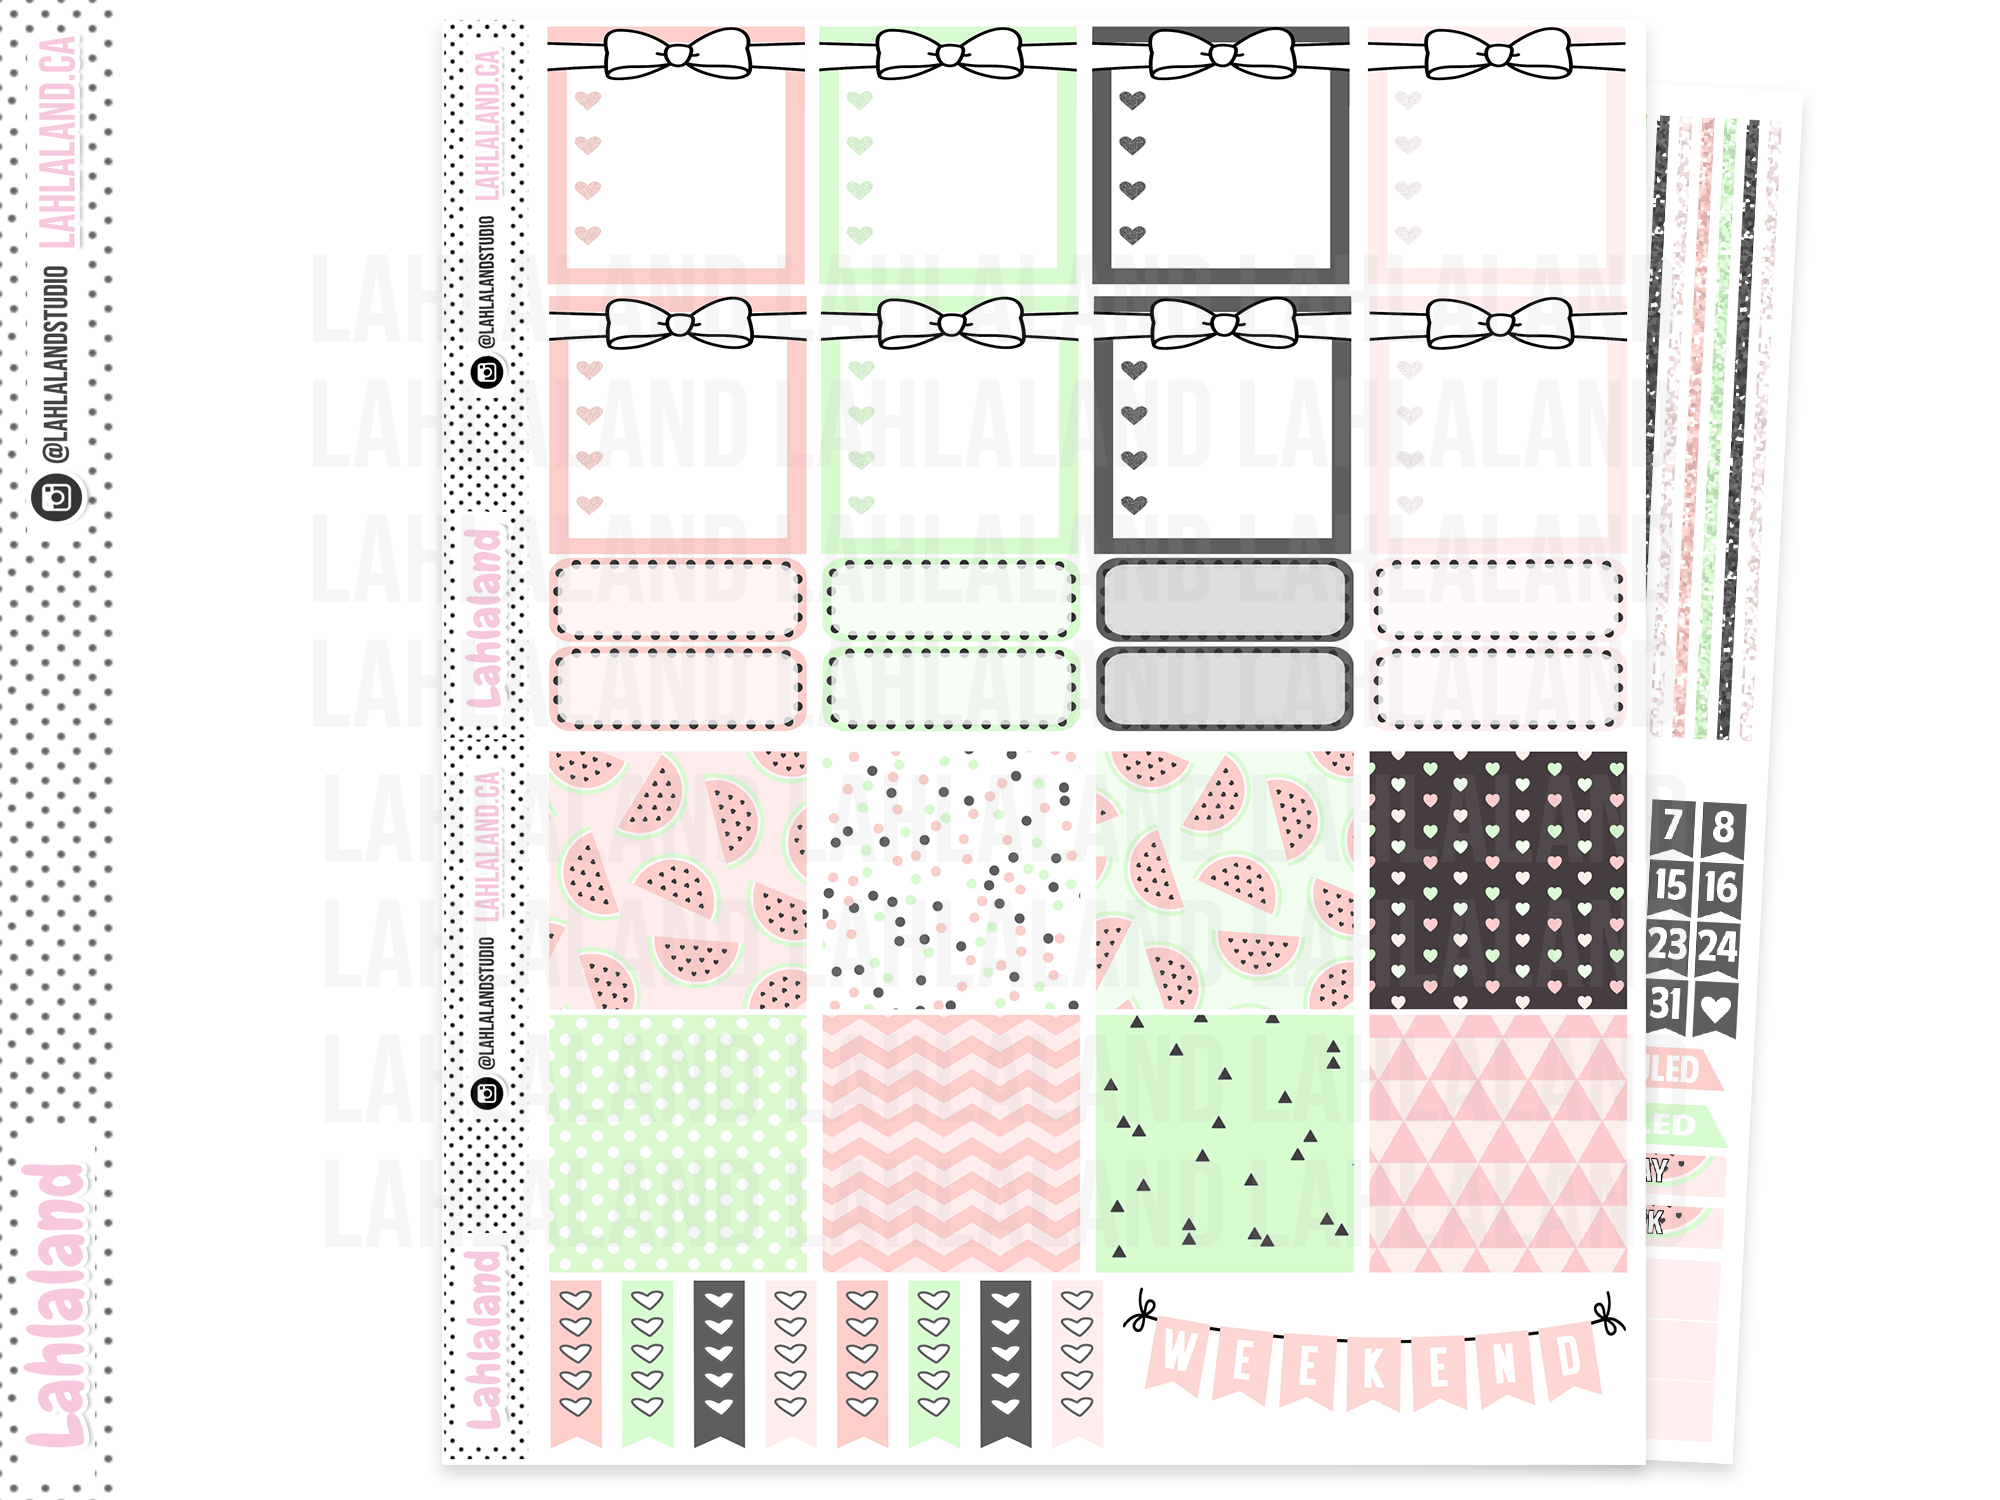 Mini Happy Planner - Watermelon Chic Weekly Kit